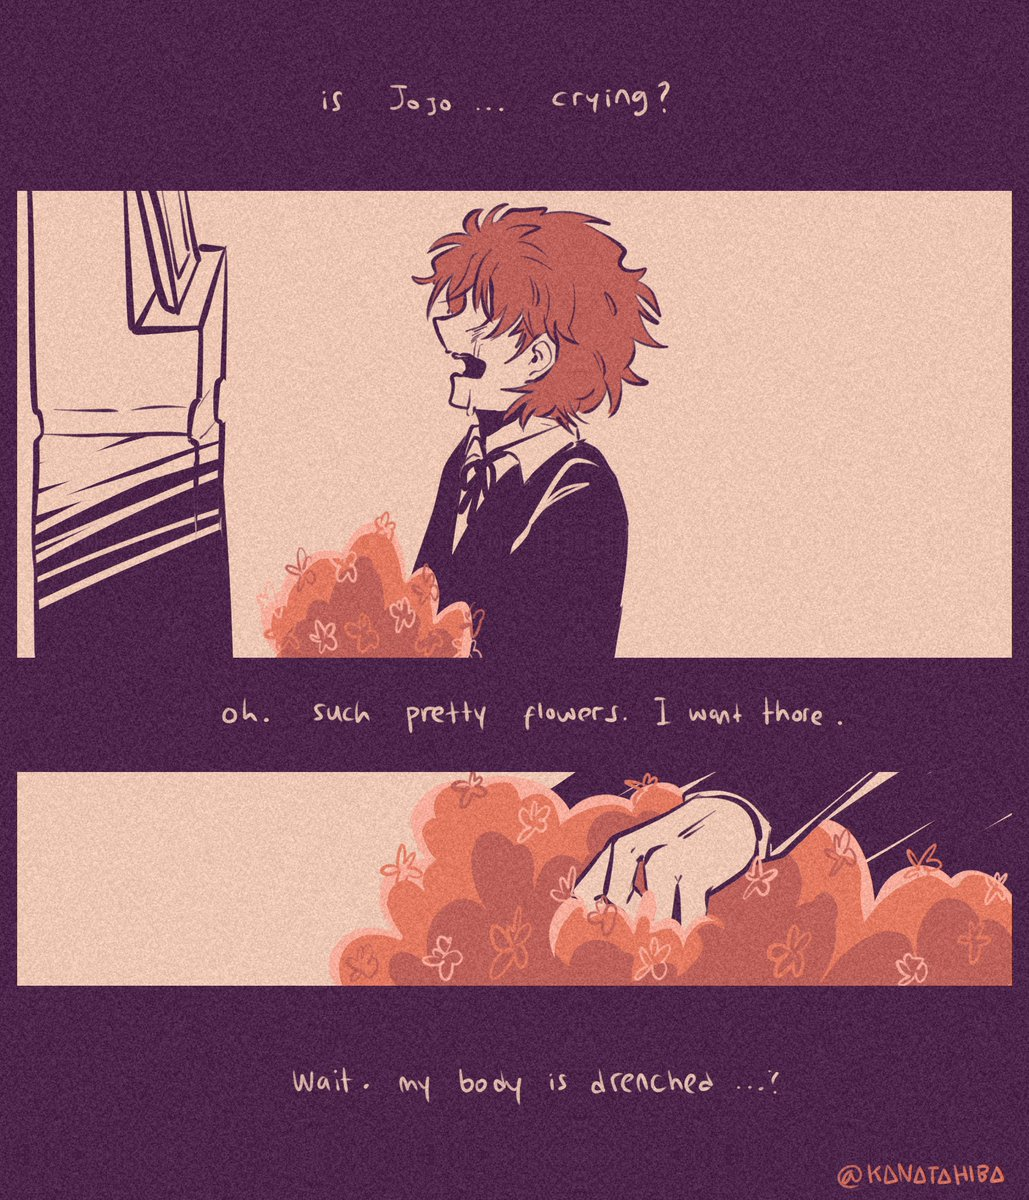 Flowers. (2) //Jonathan almost drown, and Dio saved him but... <br>http://pic.twitter.com/79hLN6ckPR